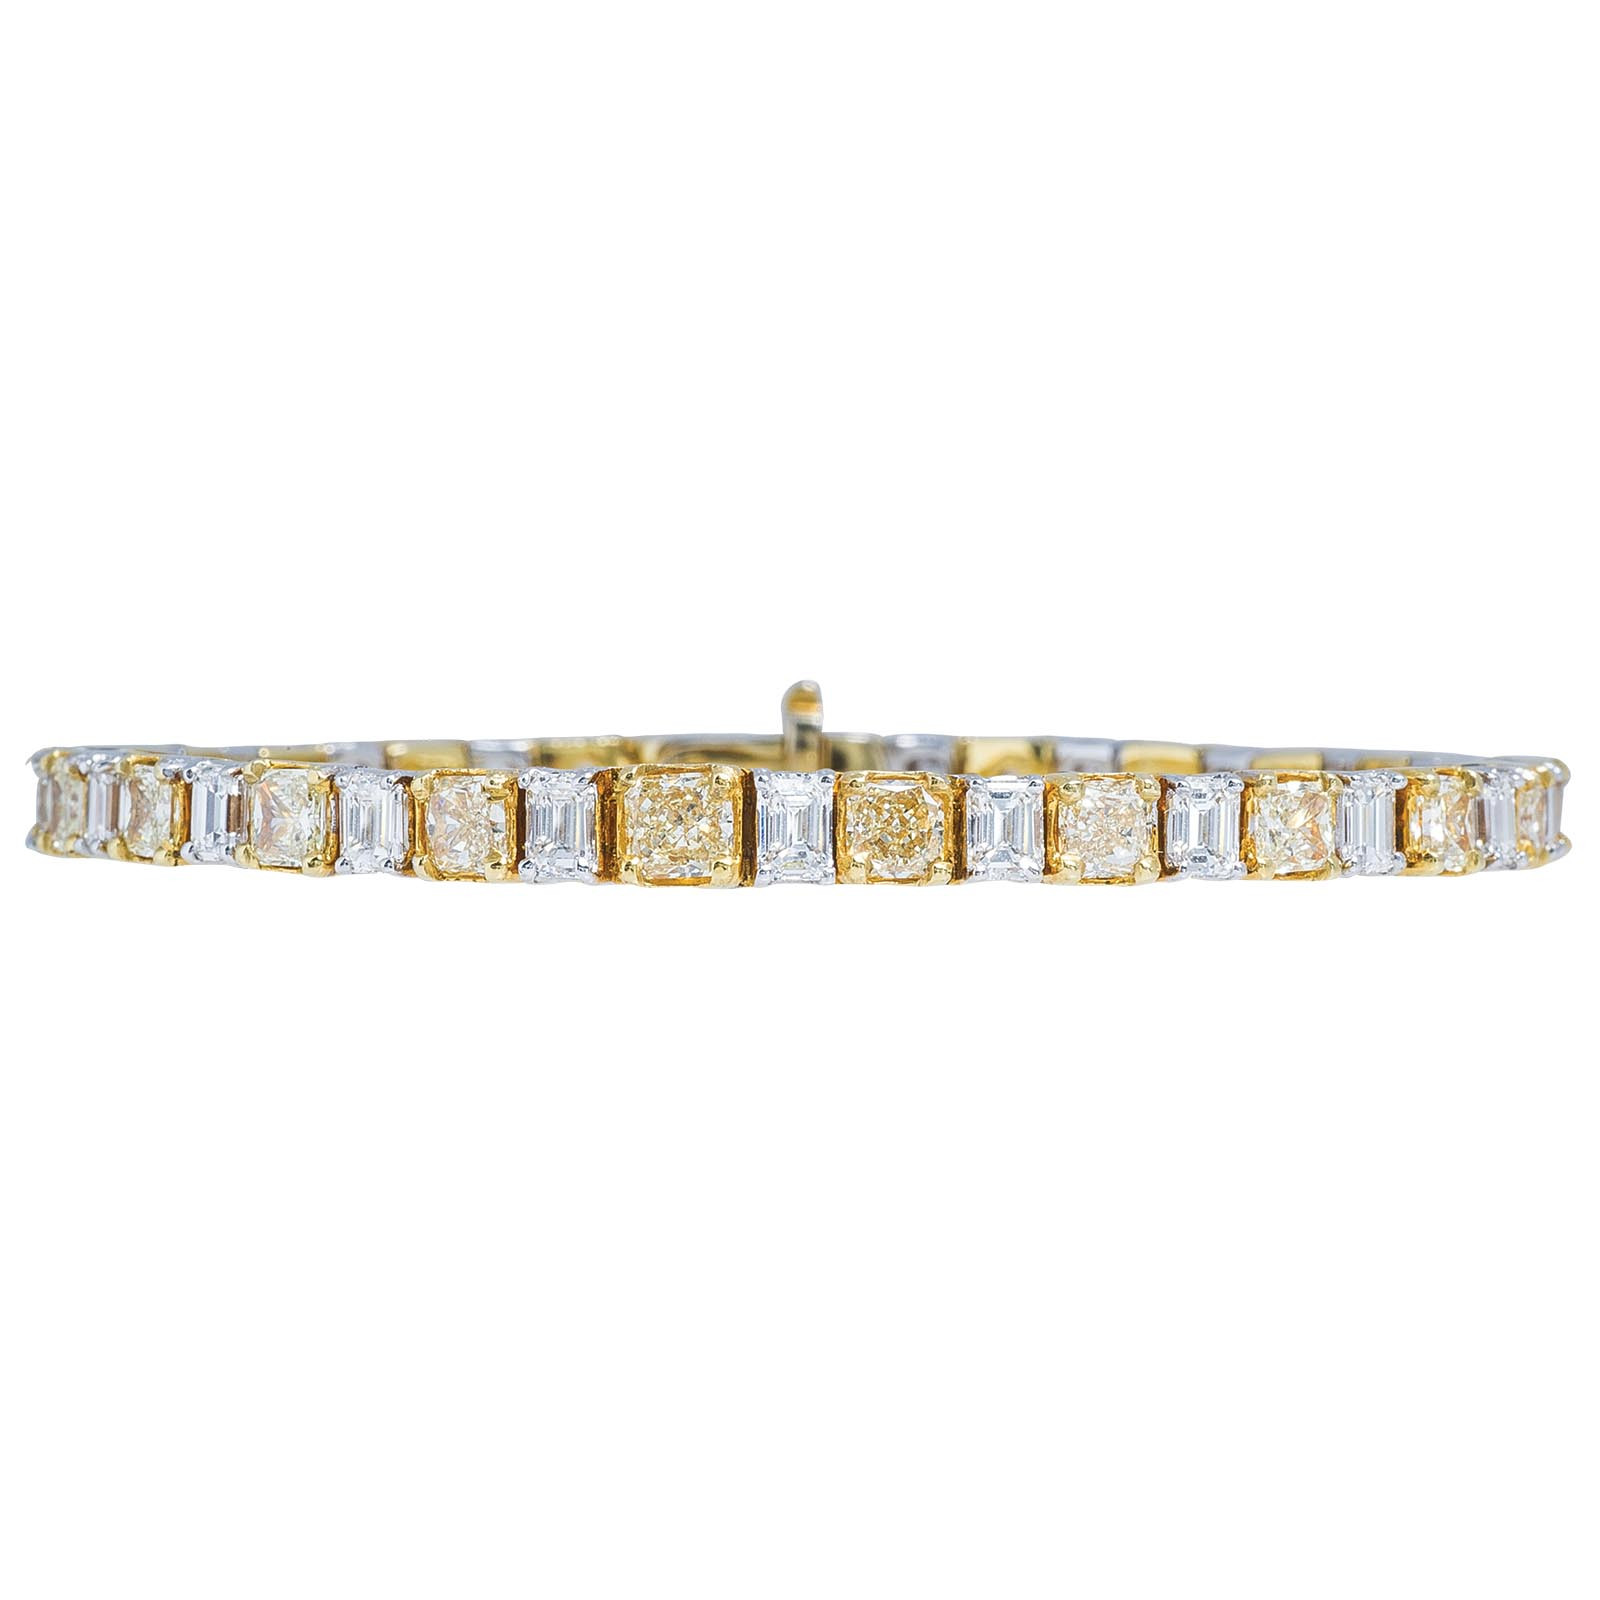 New 9.47 CTW Yellow & White Diamond Tennis Bracelet